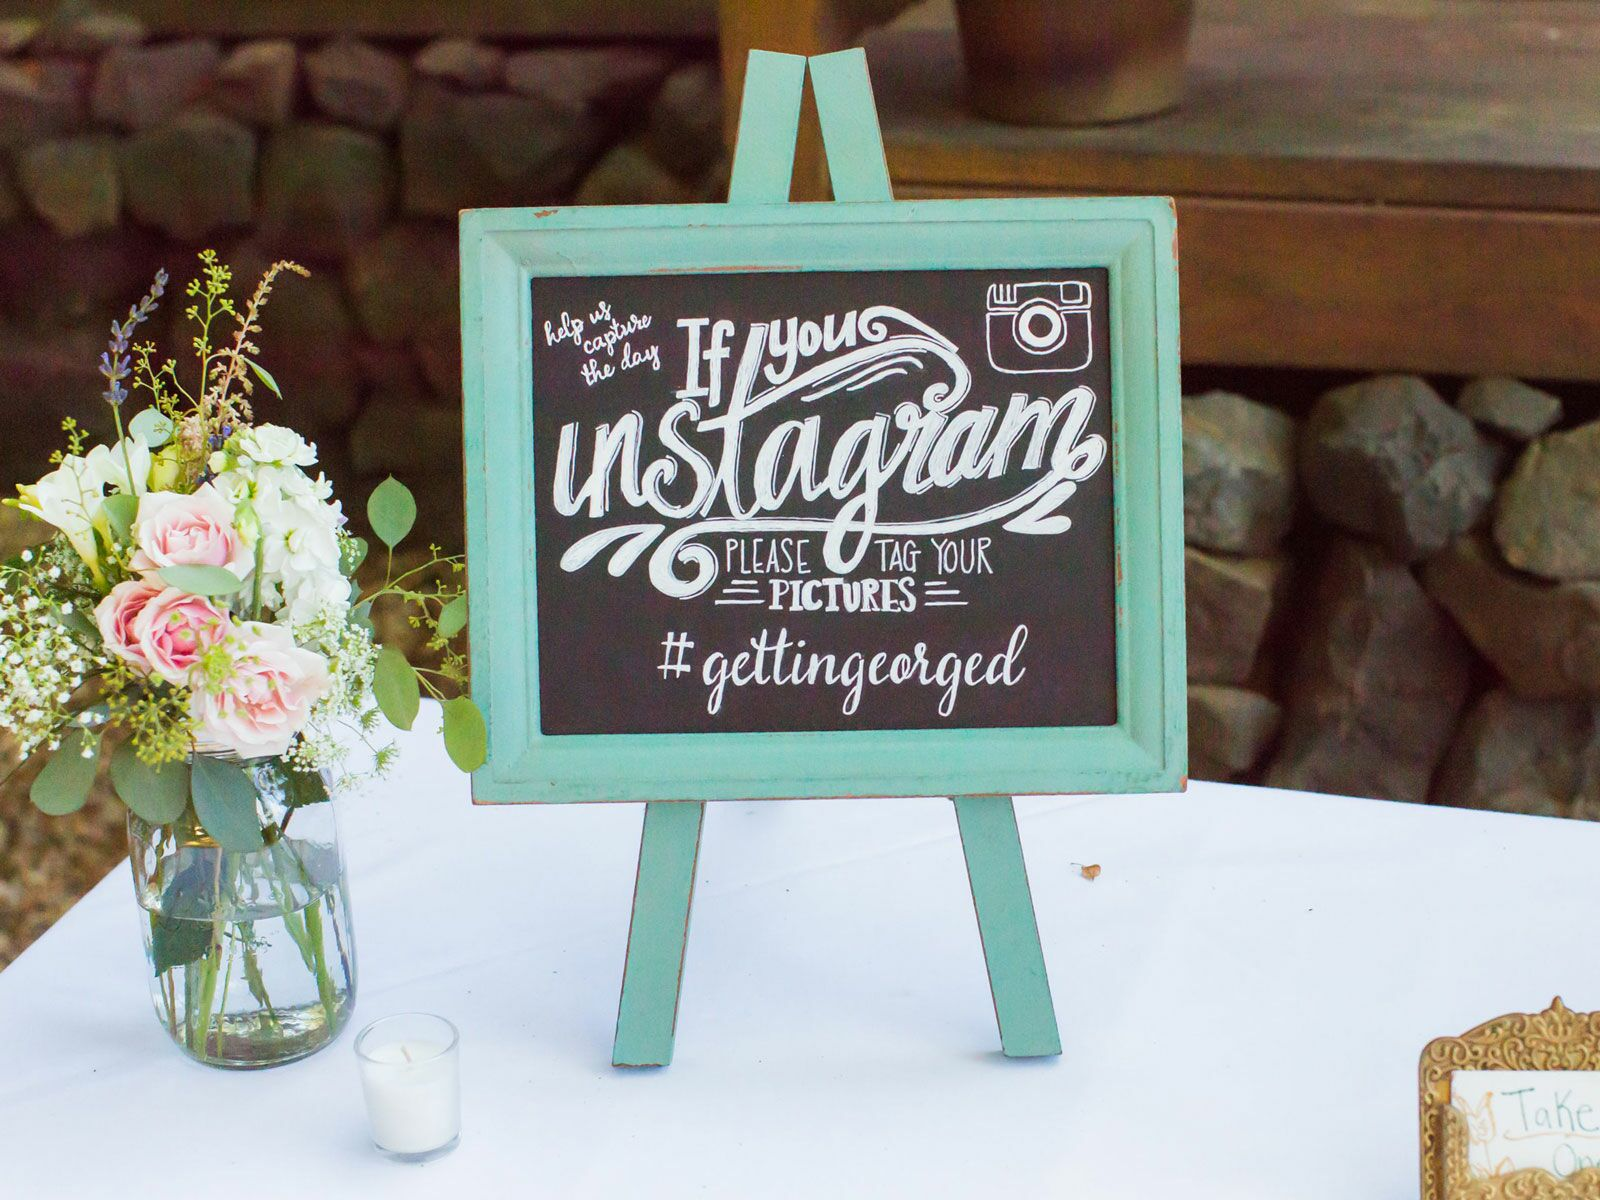 Best Wedding Hashtags 2021 The Best Wedding Hashtag Ideas & Wedding Hashtag Generator